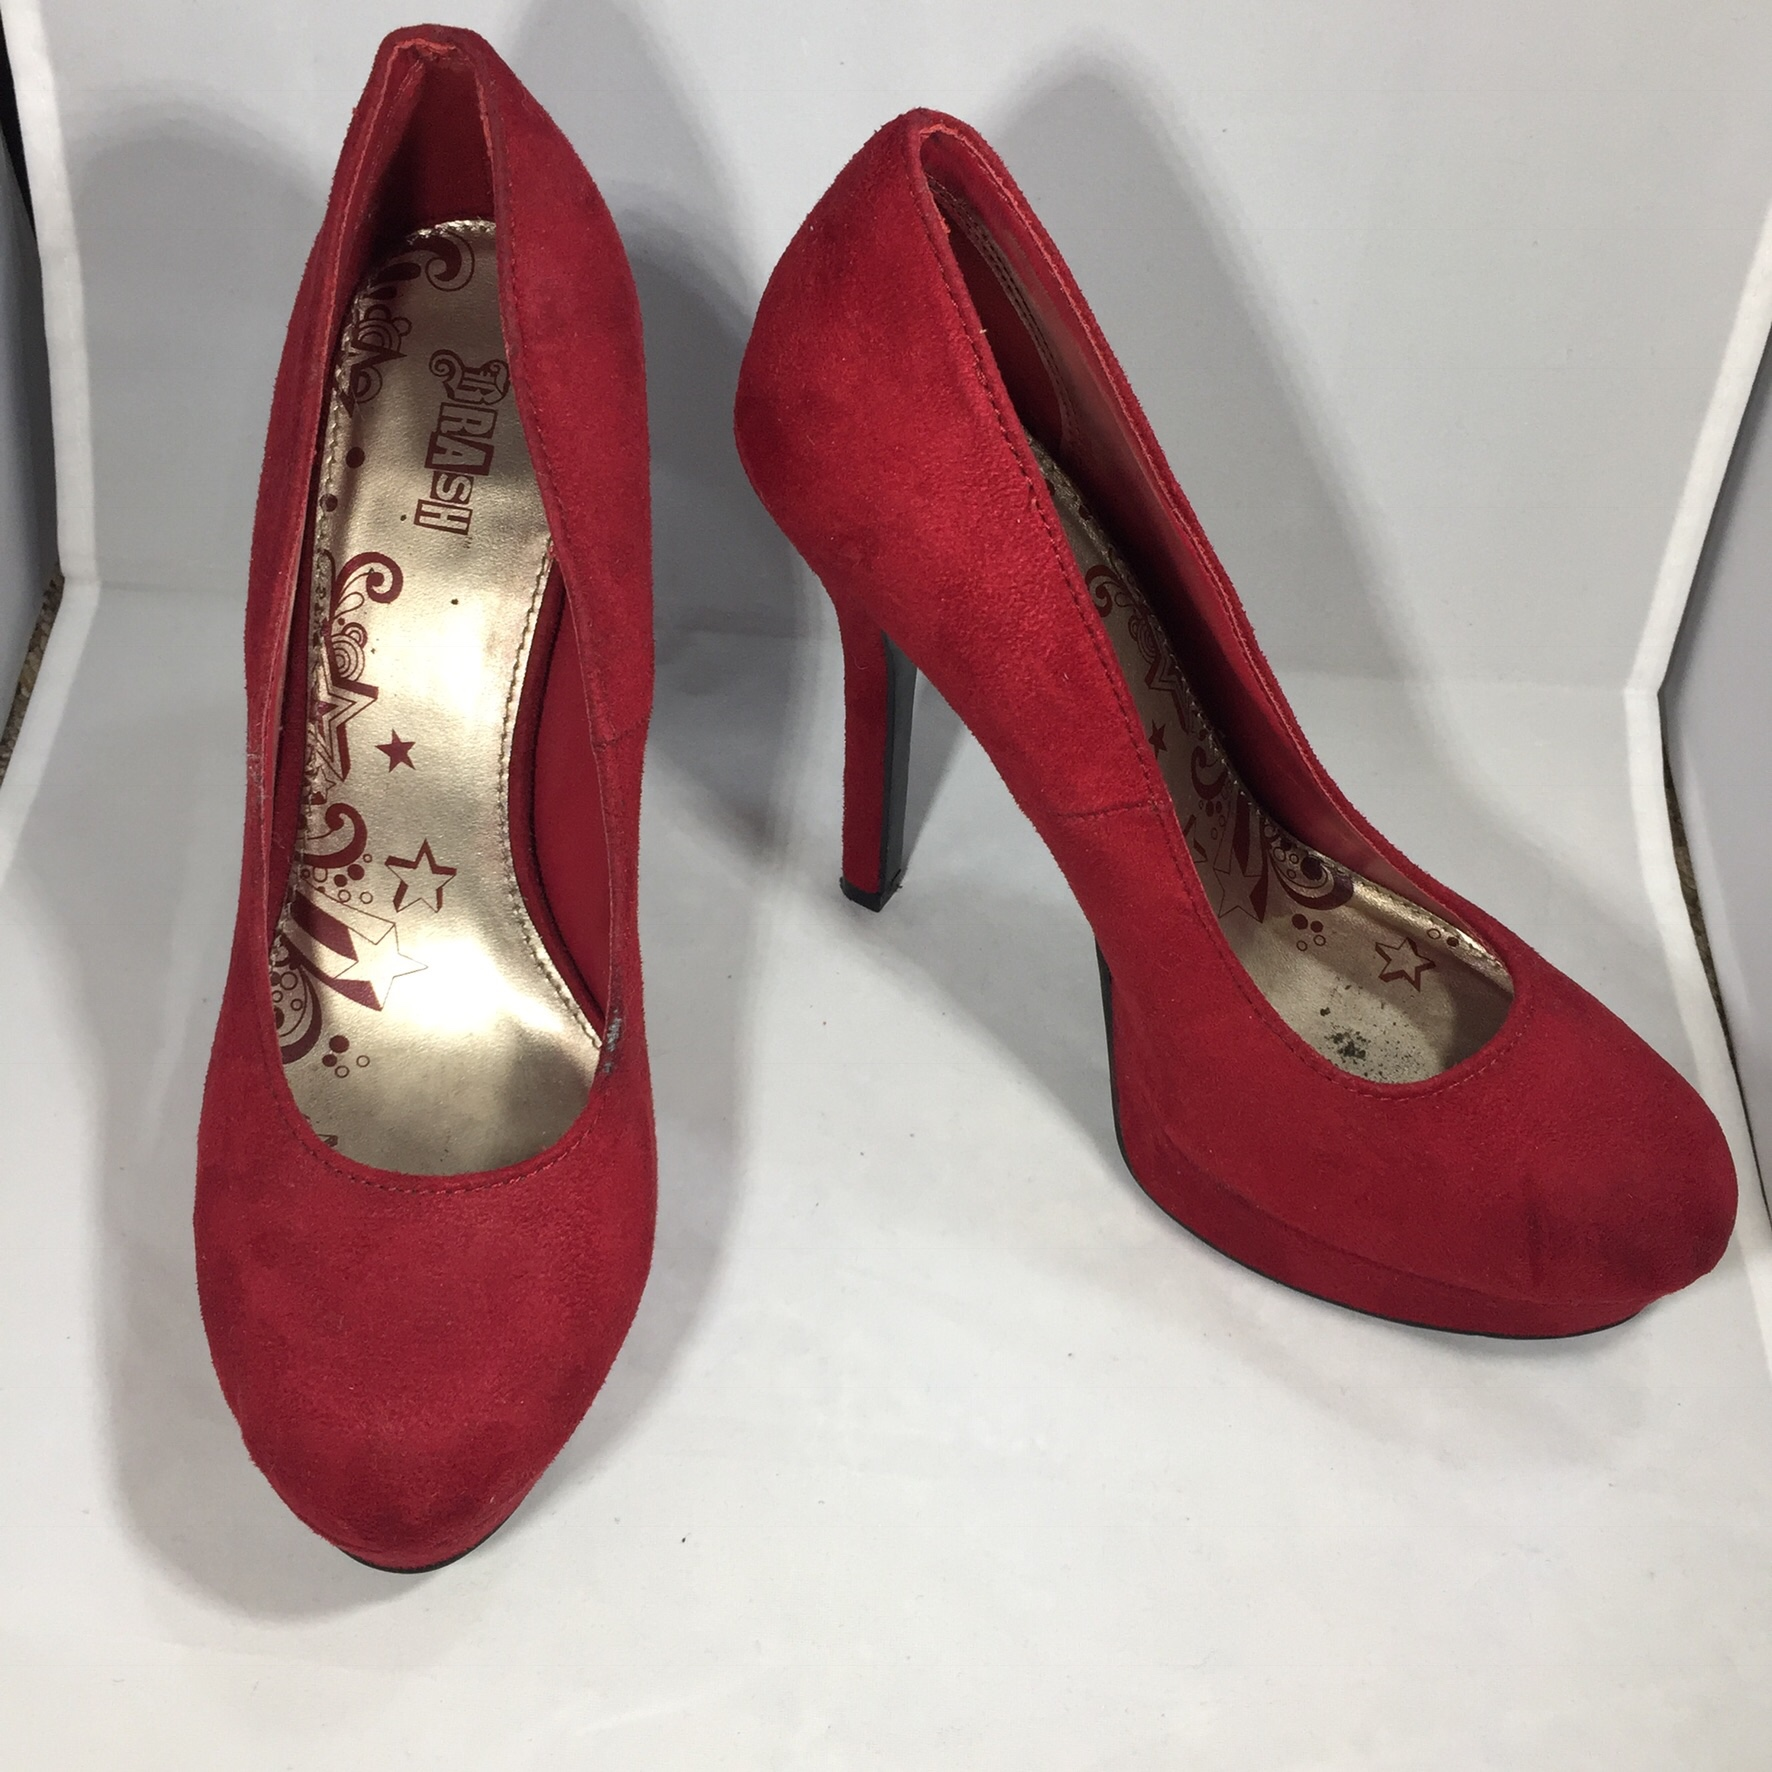 4704c7faafa Brash Payless Women's red pumps heels size 8.5 Worn... - Depop